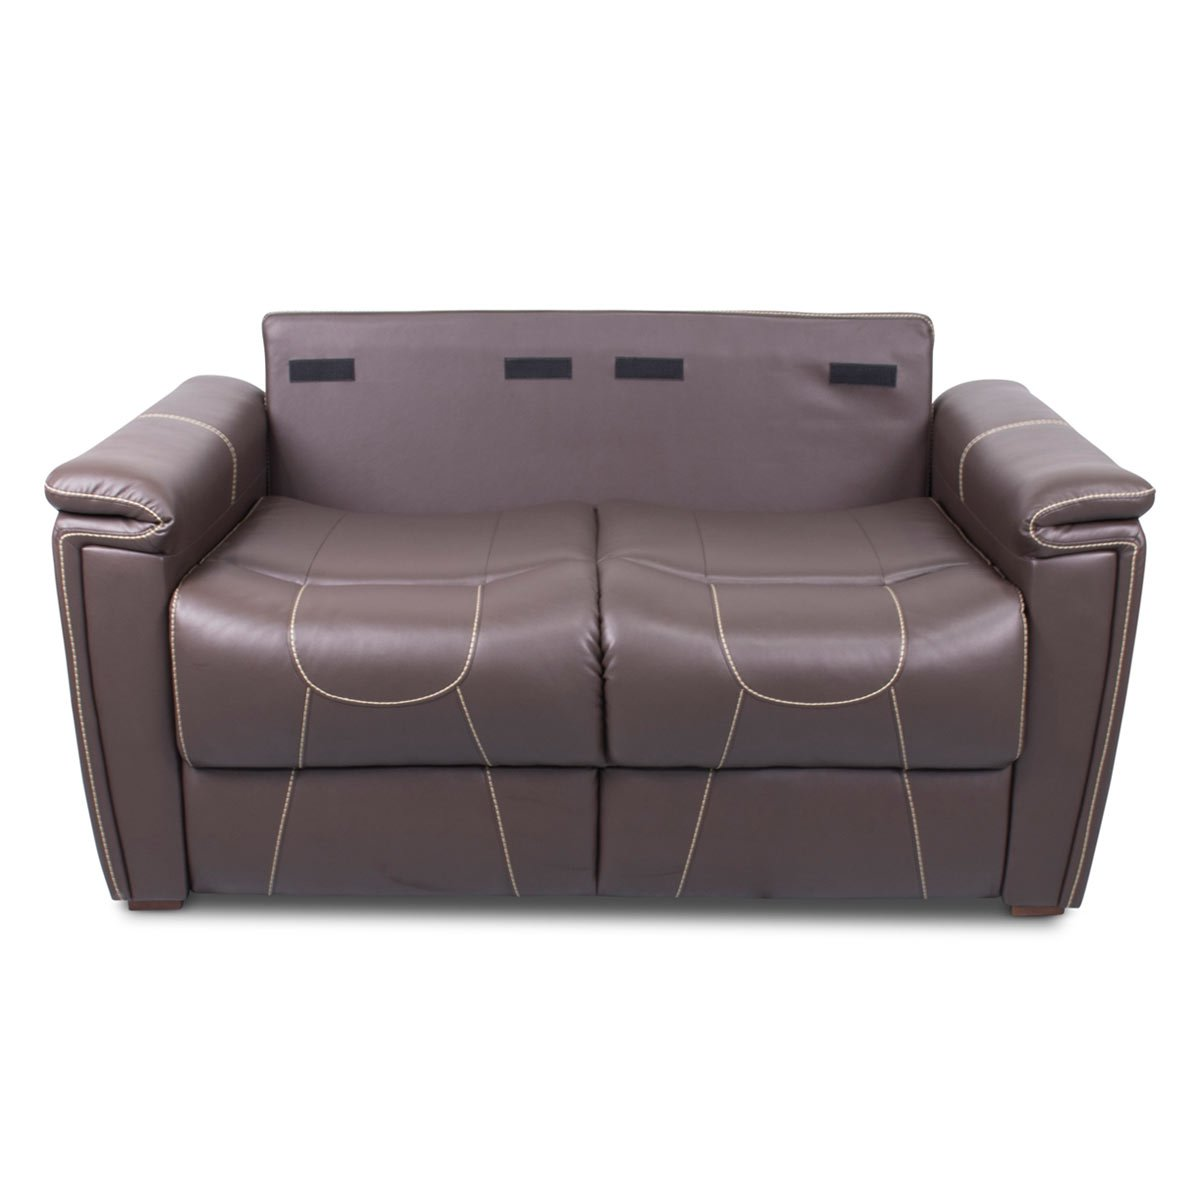 Amazon Com Thomas Payne 377708 Majestic Chocolate 68 Trifold Sofa